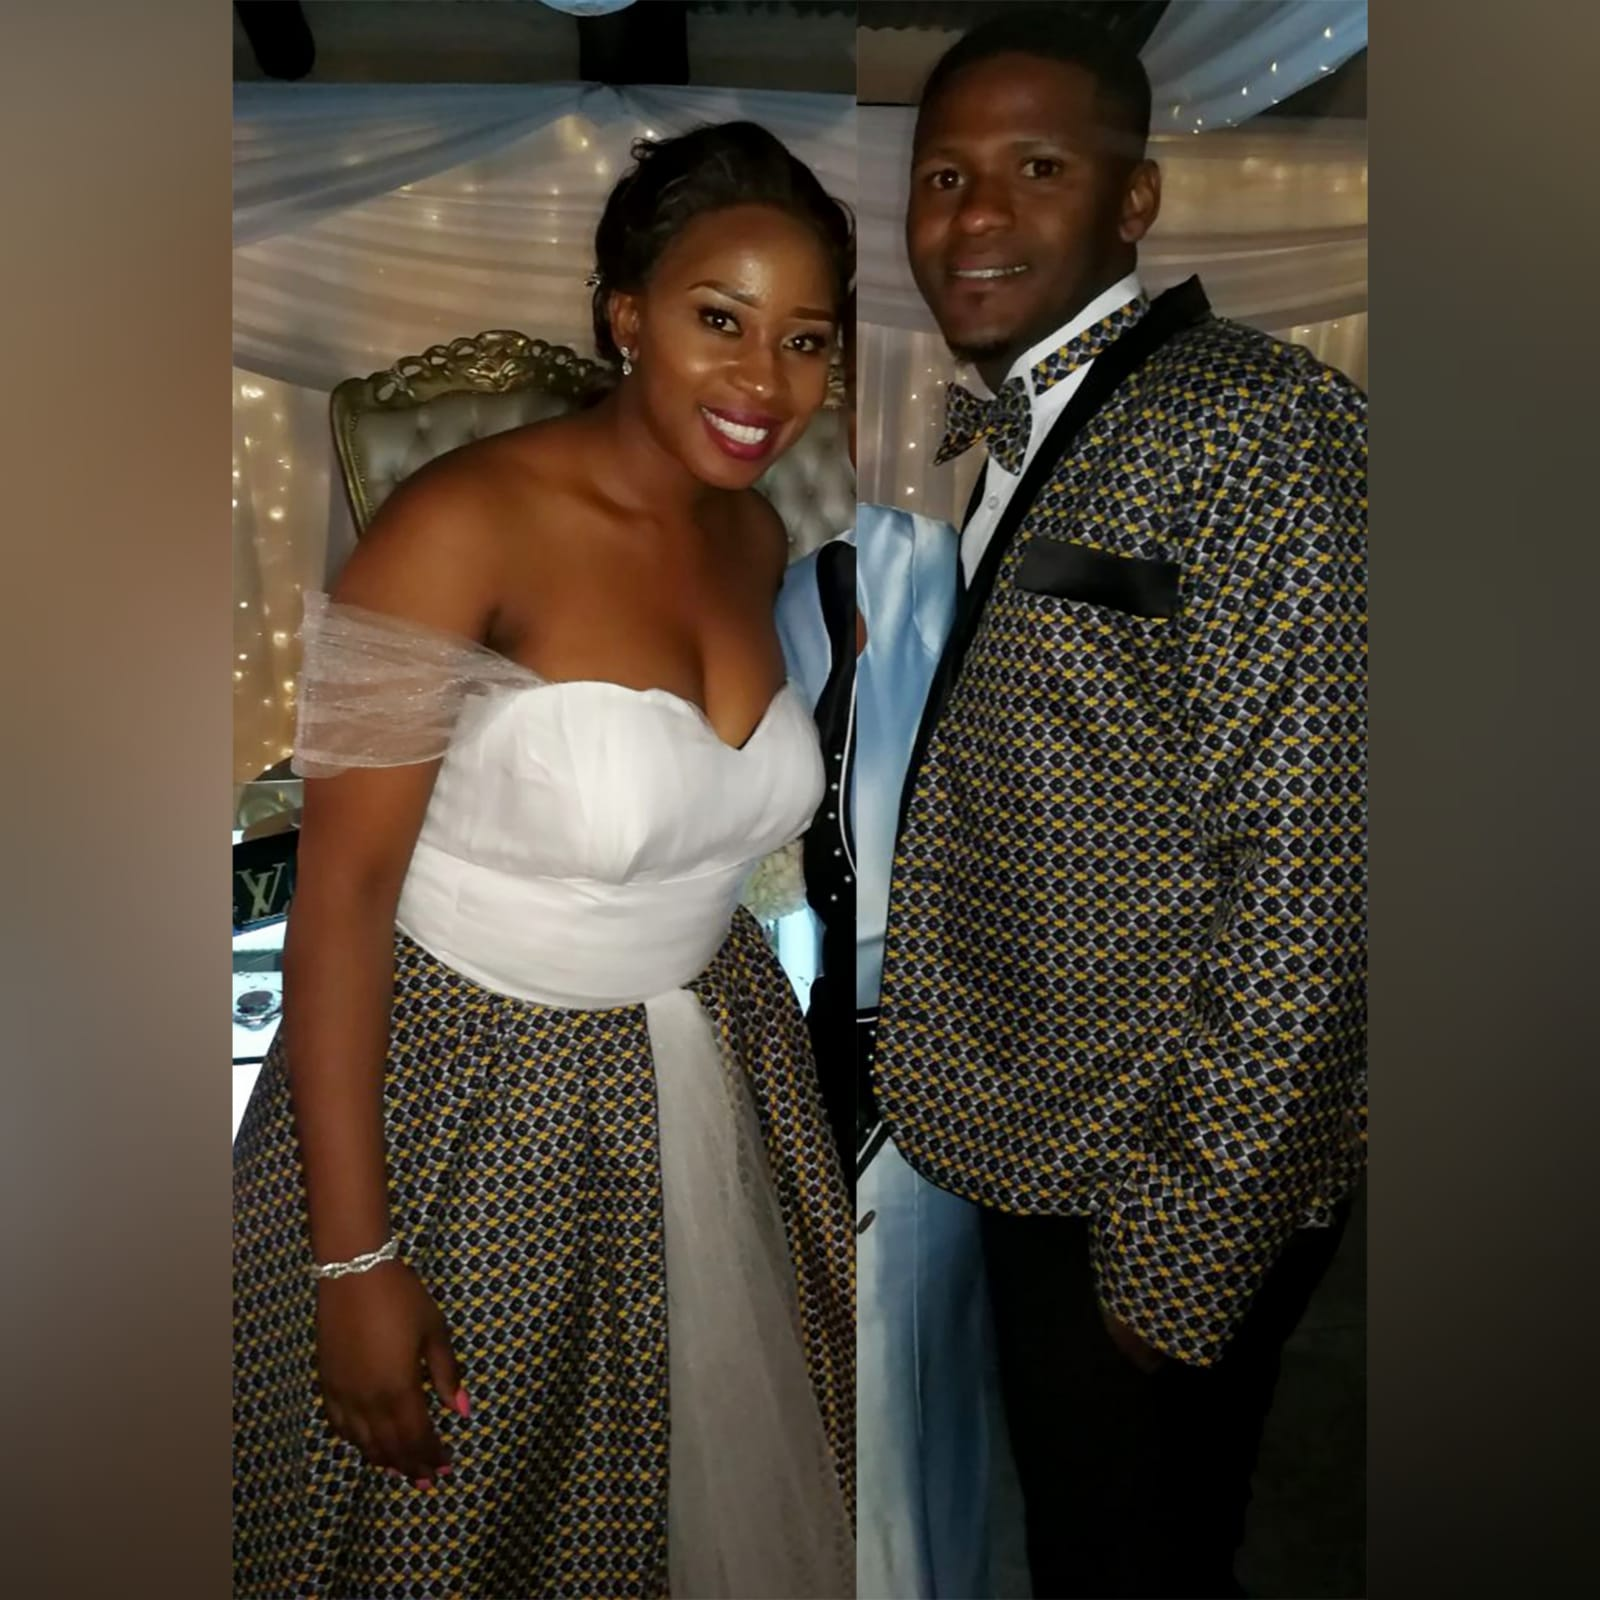 White and brown african traditional wedding dress 4 white and brown african traditional wedding dress. Sweetheart neckline, off shoulder tulle straps with a tulle skirt and an overlayer of african traditional fabric. Grooms matching blazer and bowtie.